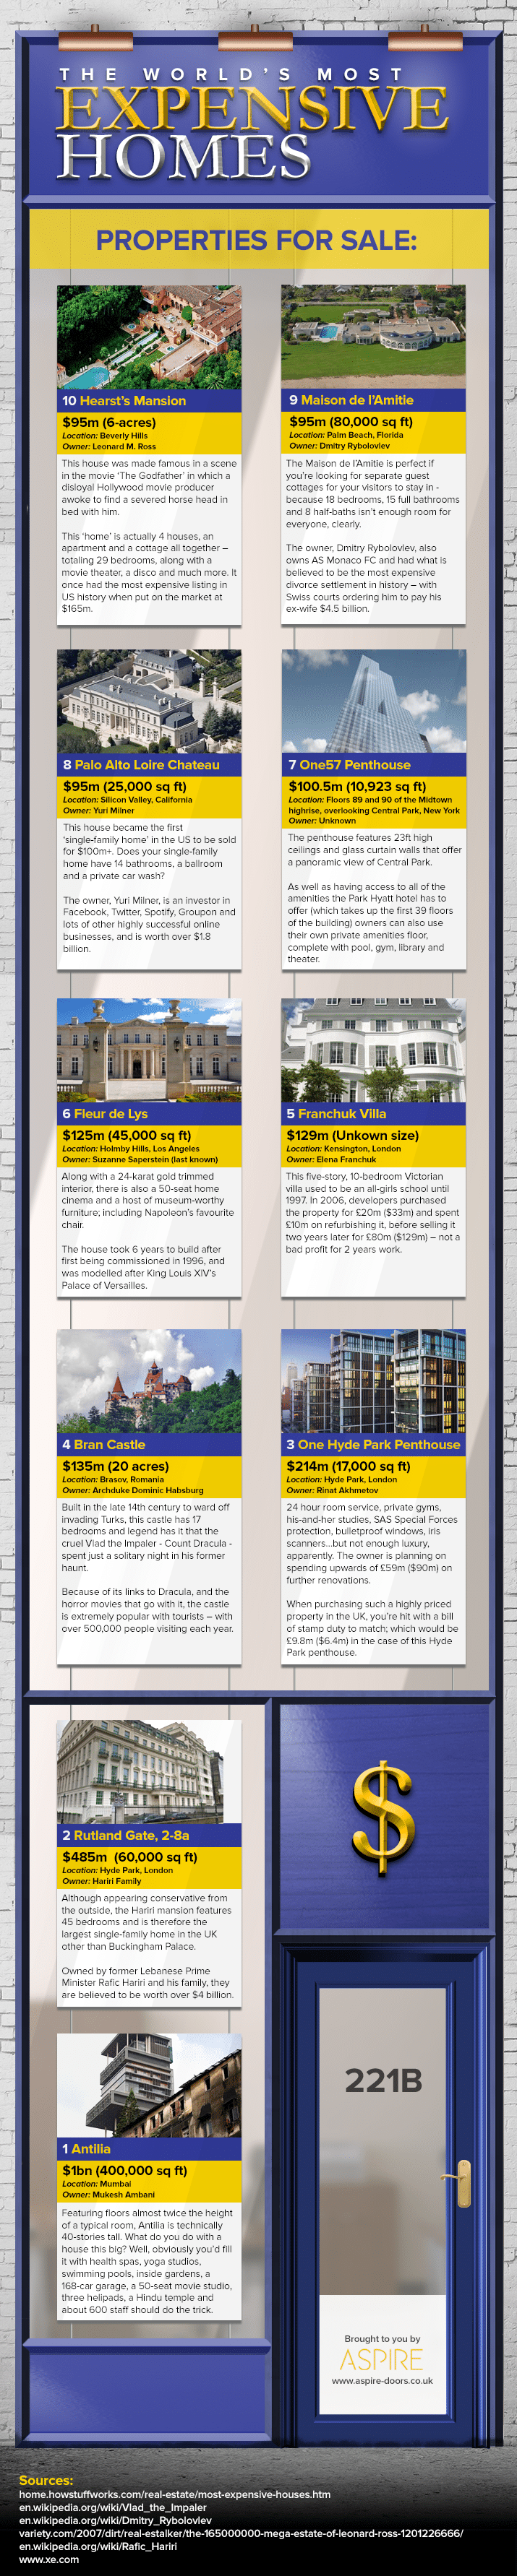 , The World's Most Expensive Homes [Infographic]